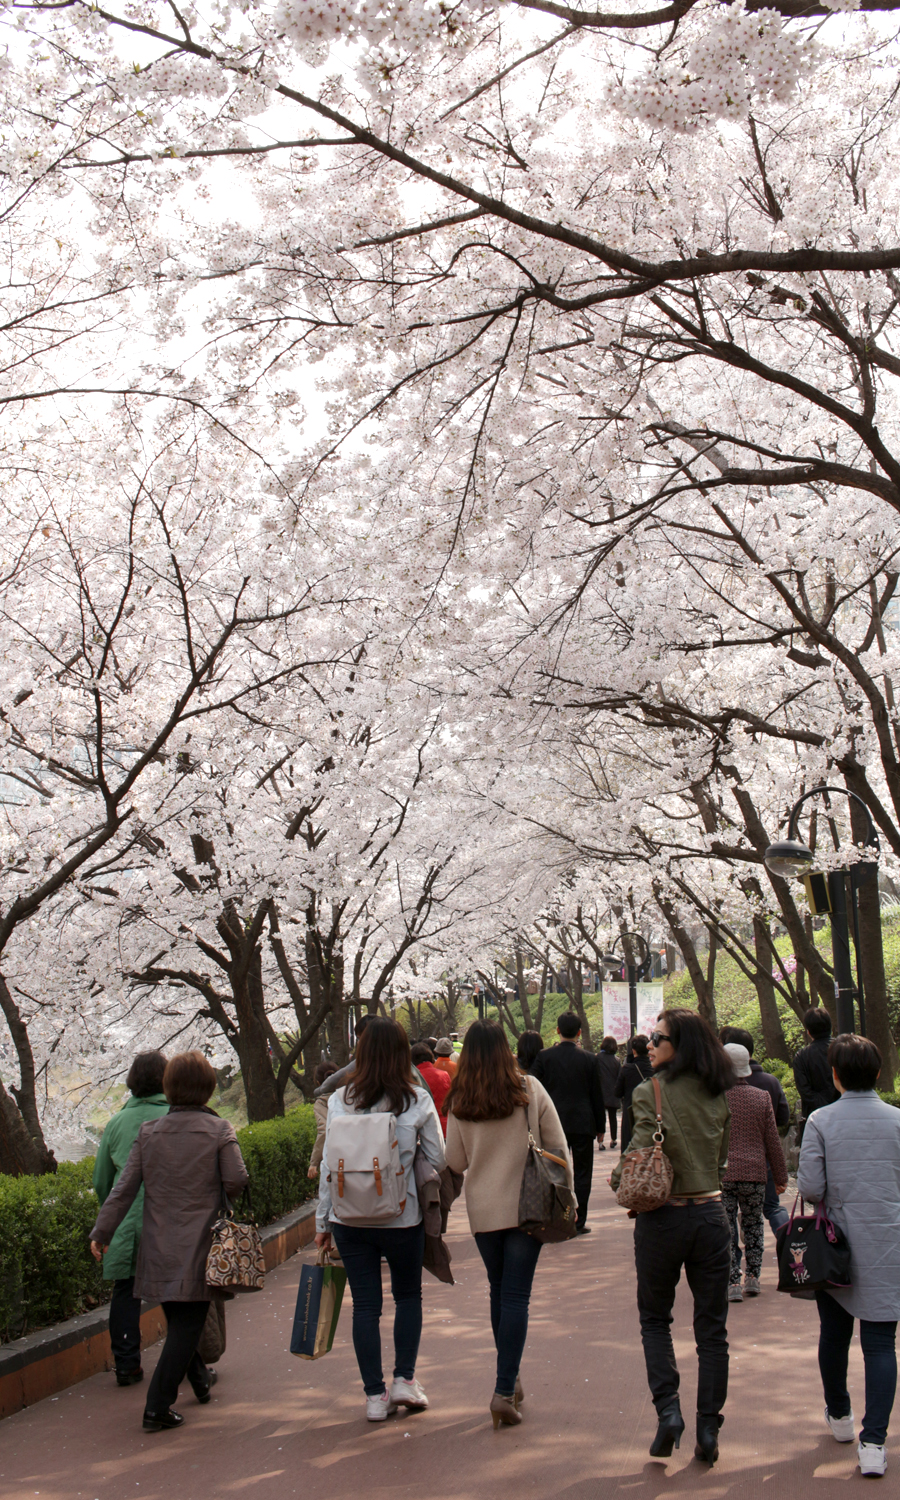 2015-04-09-korea-seoul-jamshil-seokchon-lake-cherry-blossoms-08